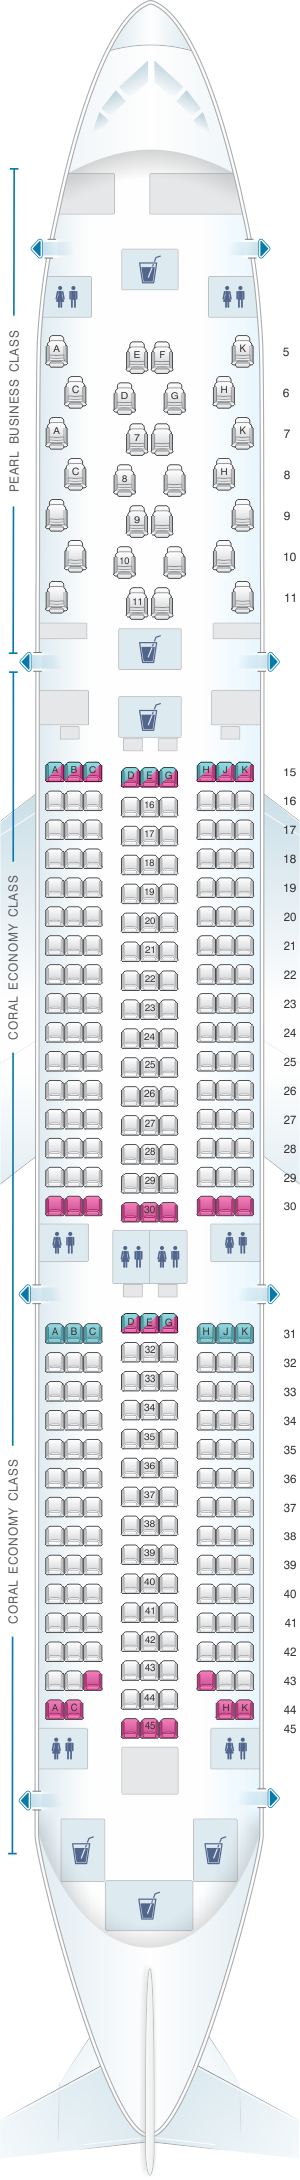 Seat map for Etihad Airways Boeing B787 9 two class